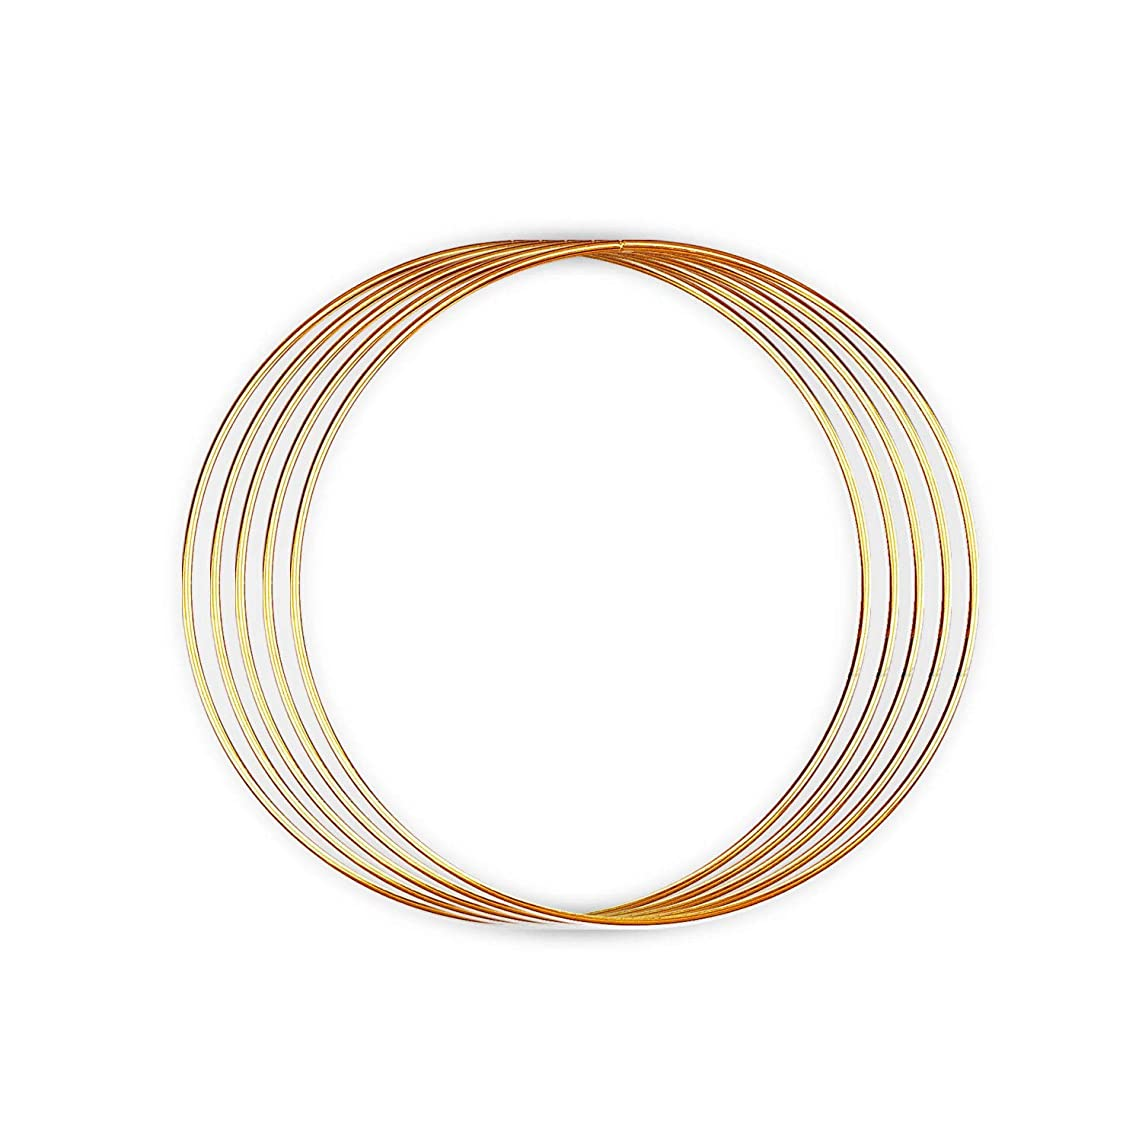 Metal Rings - for Dream Catcher, Macrame Supplies, Ring Napkin Holders. Gold Hoops by Better Crafts. (5, 9-Inch)